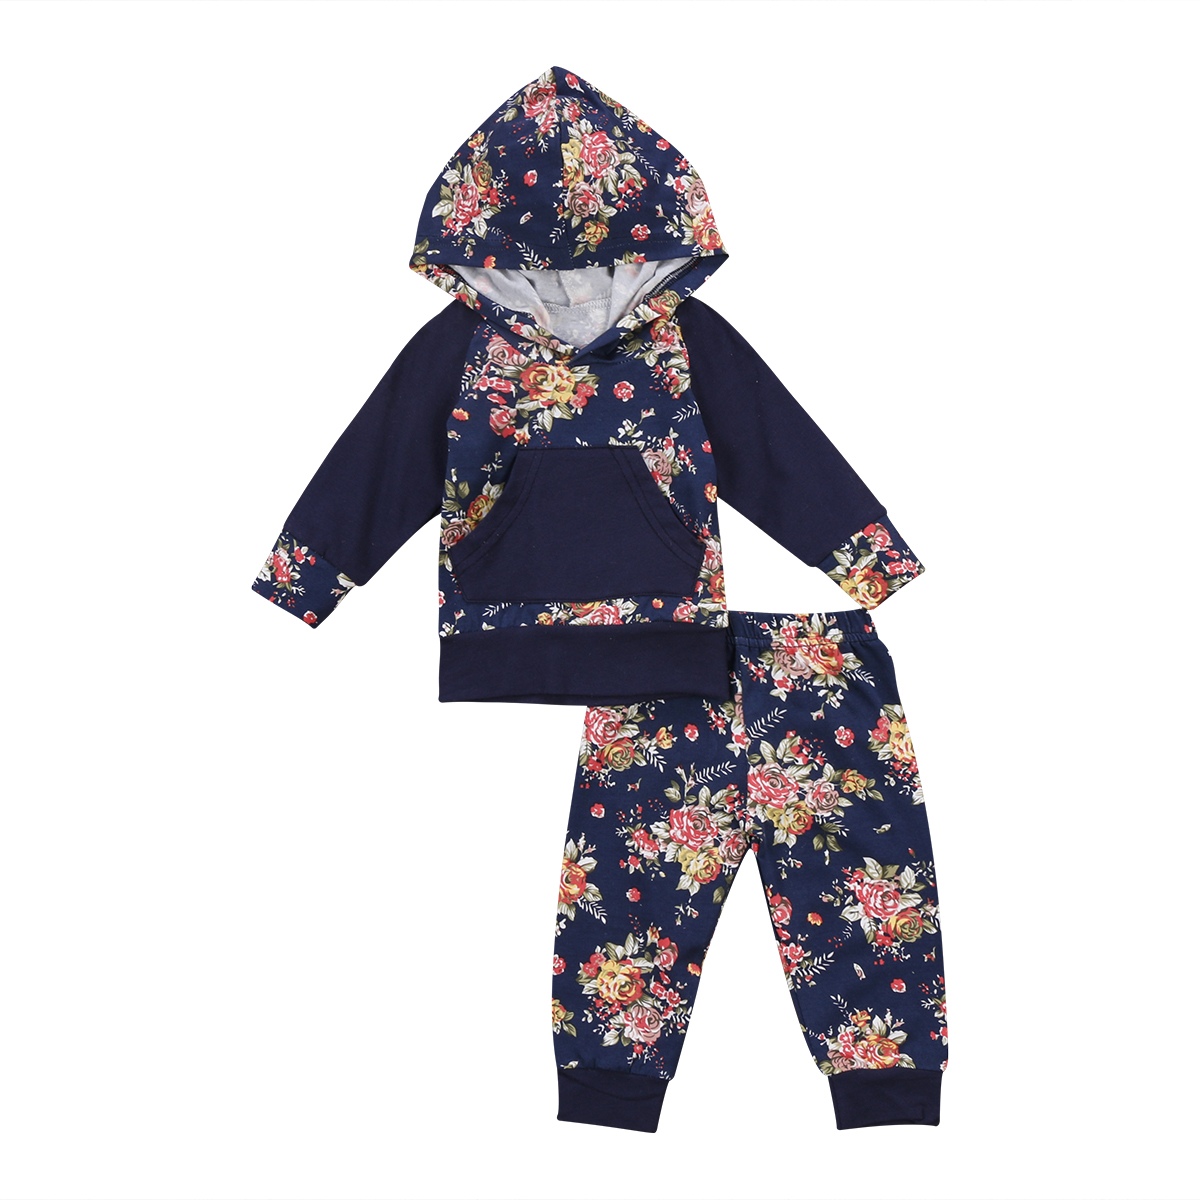 2Pcs Autumn Winter Newborn Toddler Infant Baby Girls Boys Floral Hoodies Tops Sweatshirt ...